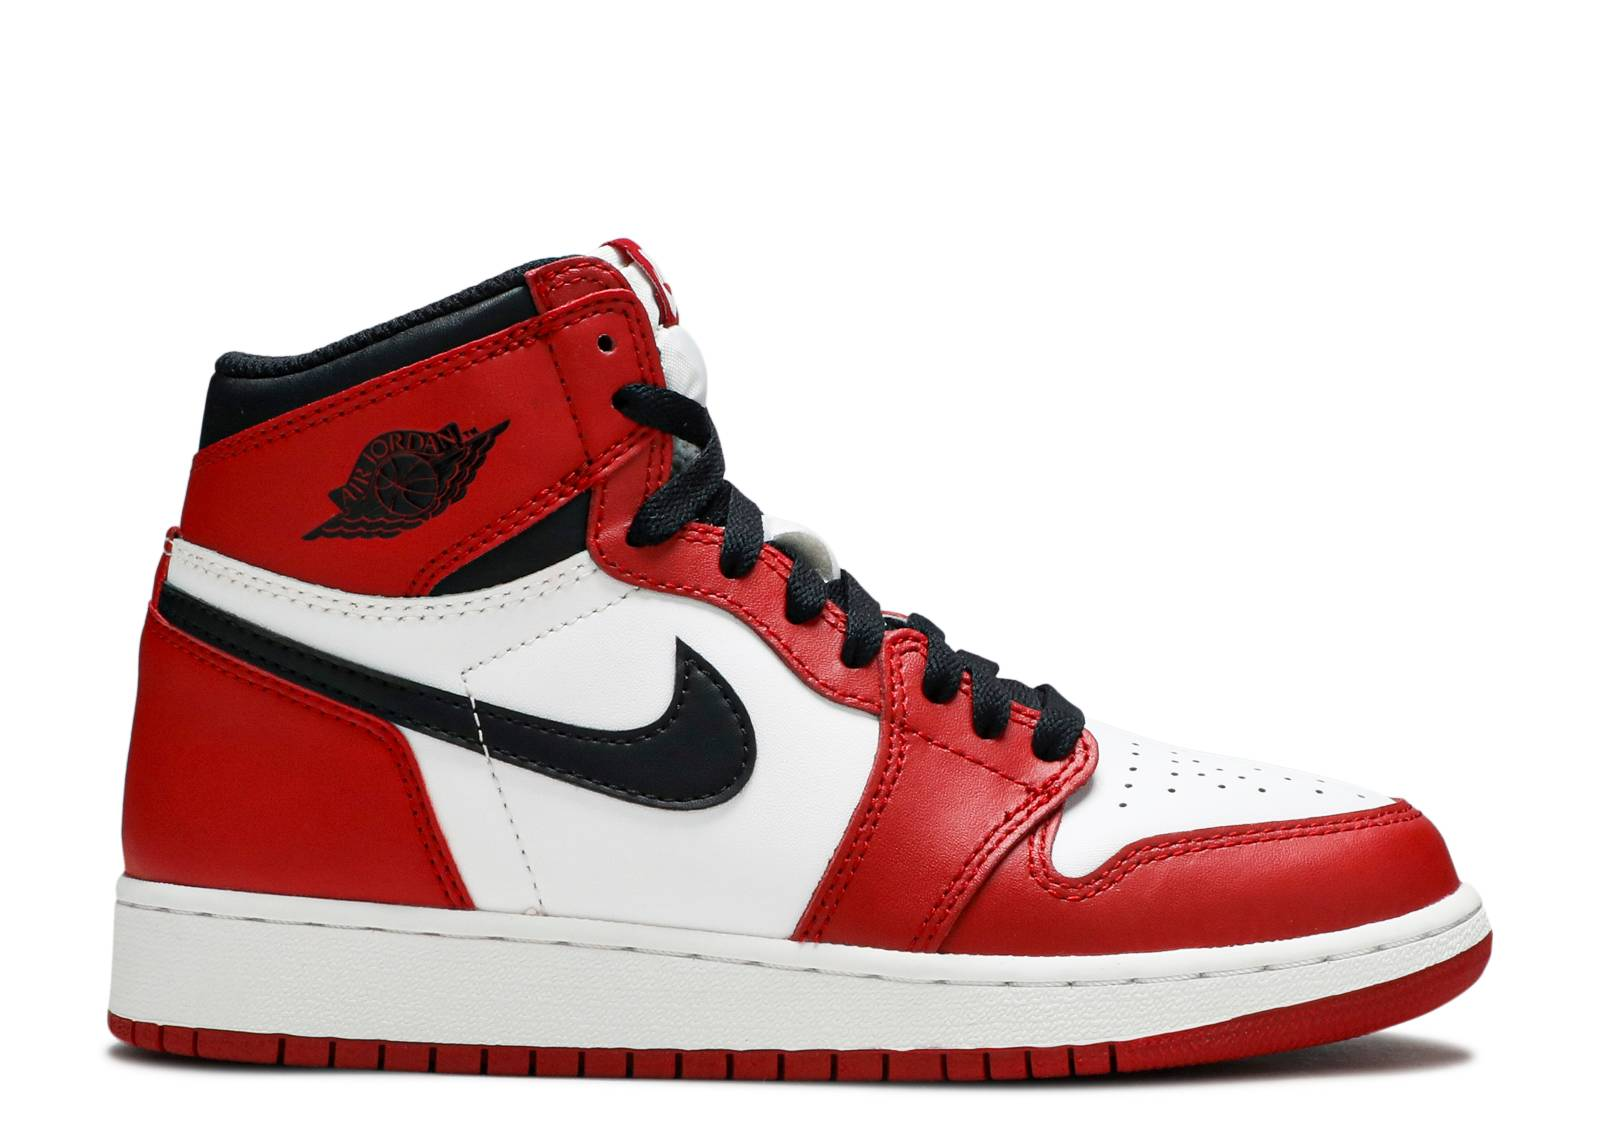 air jordan 1 retro high og chicago uk